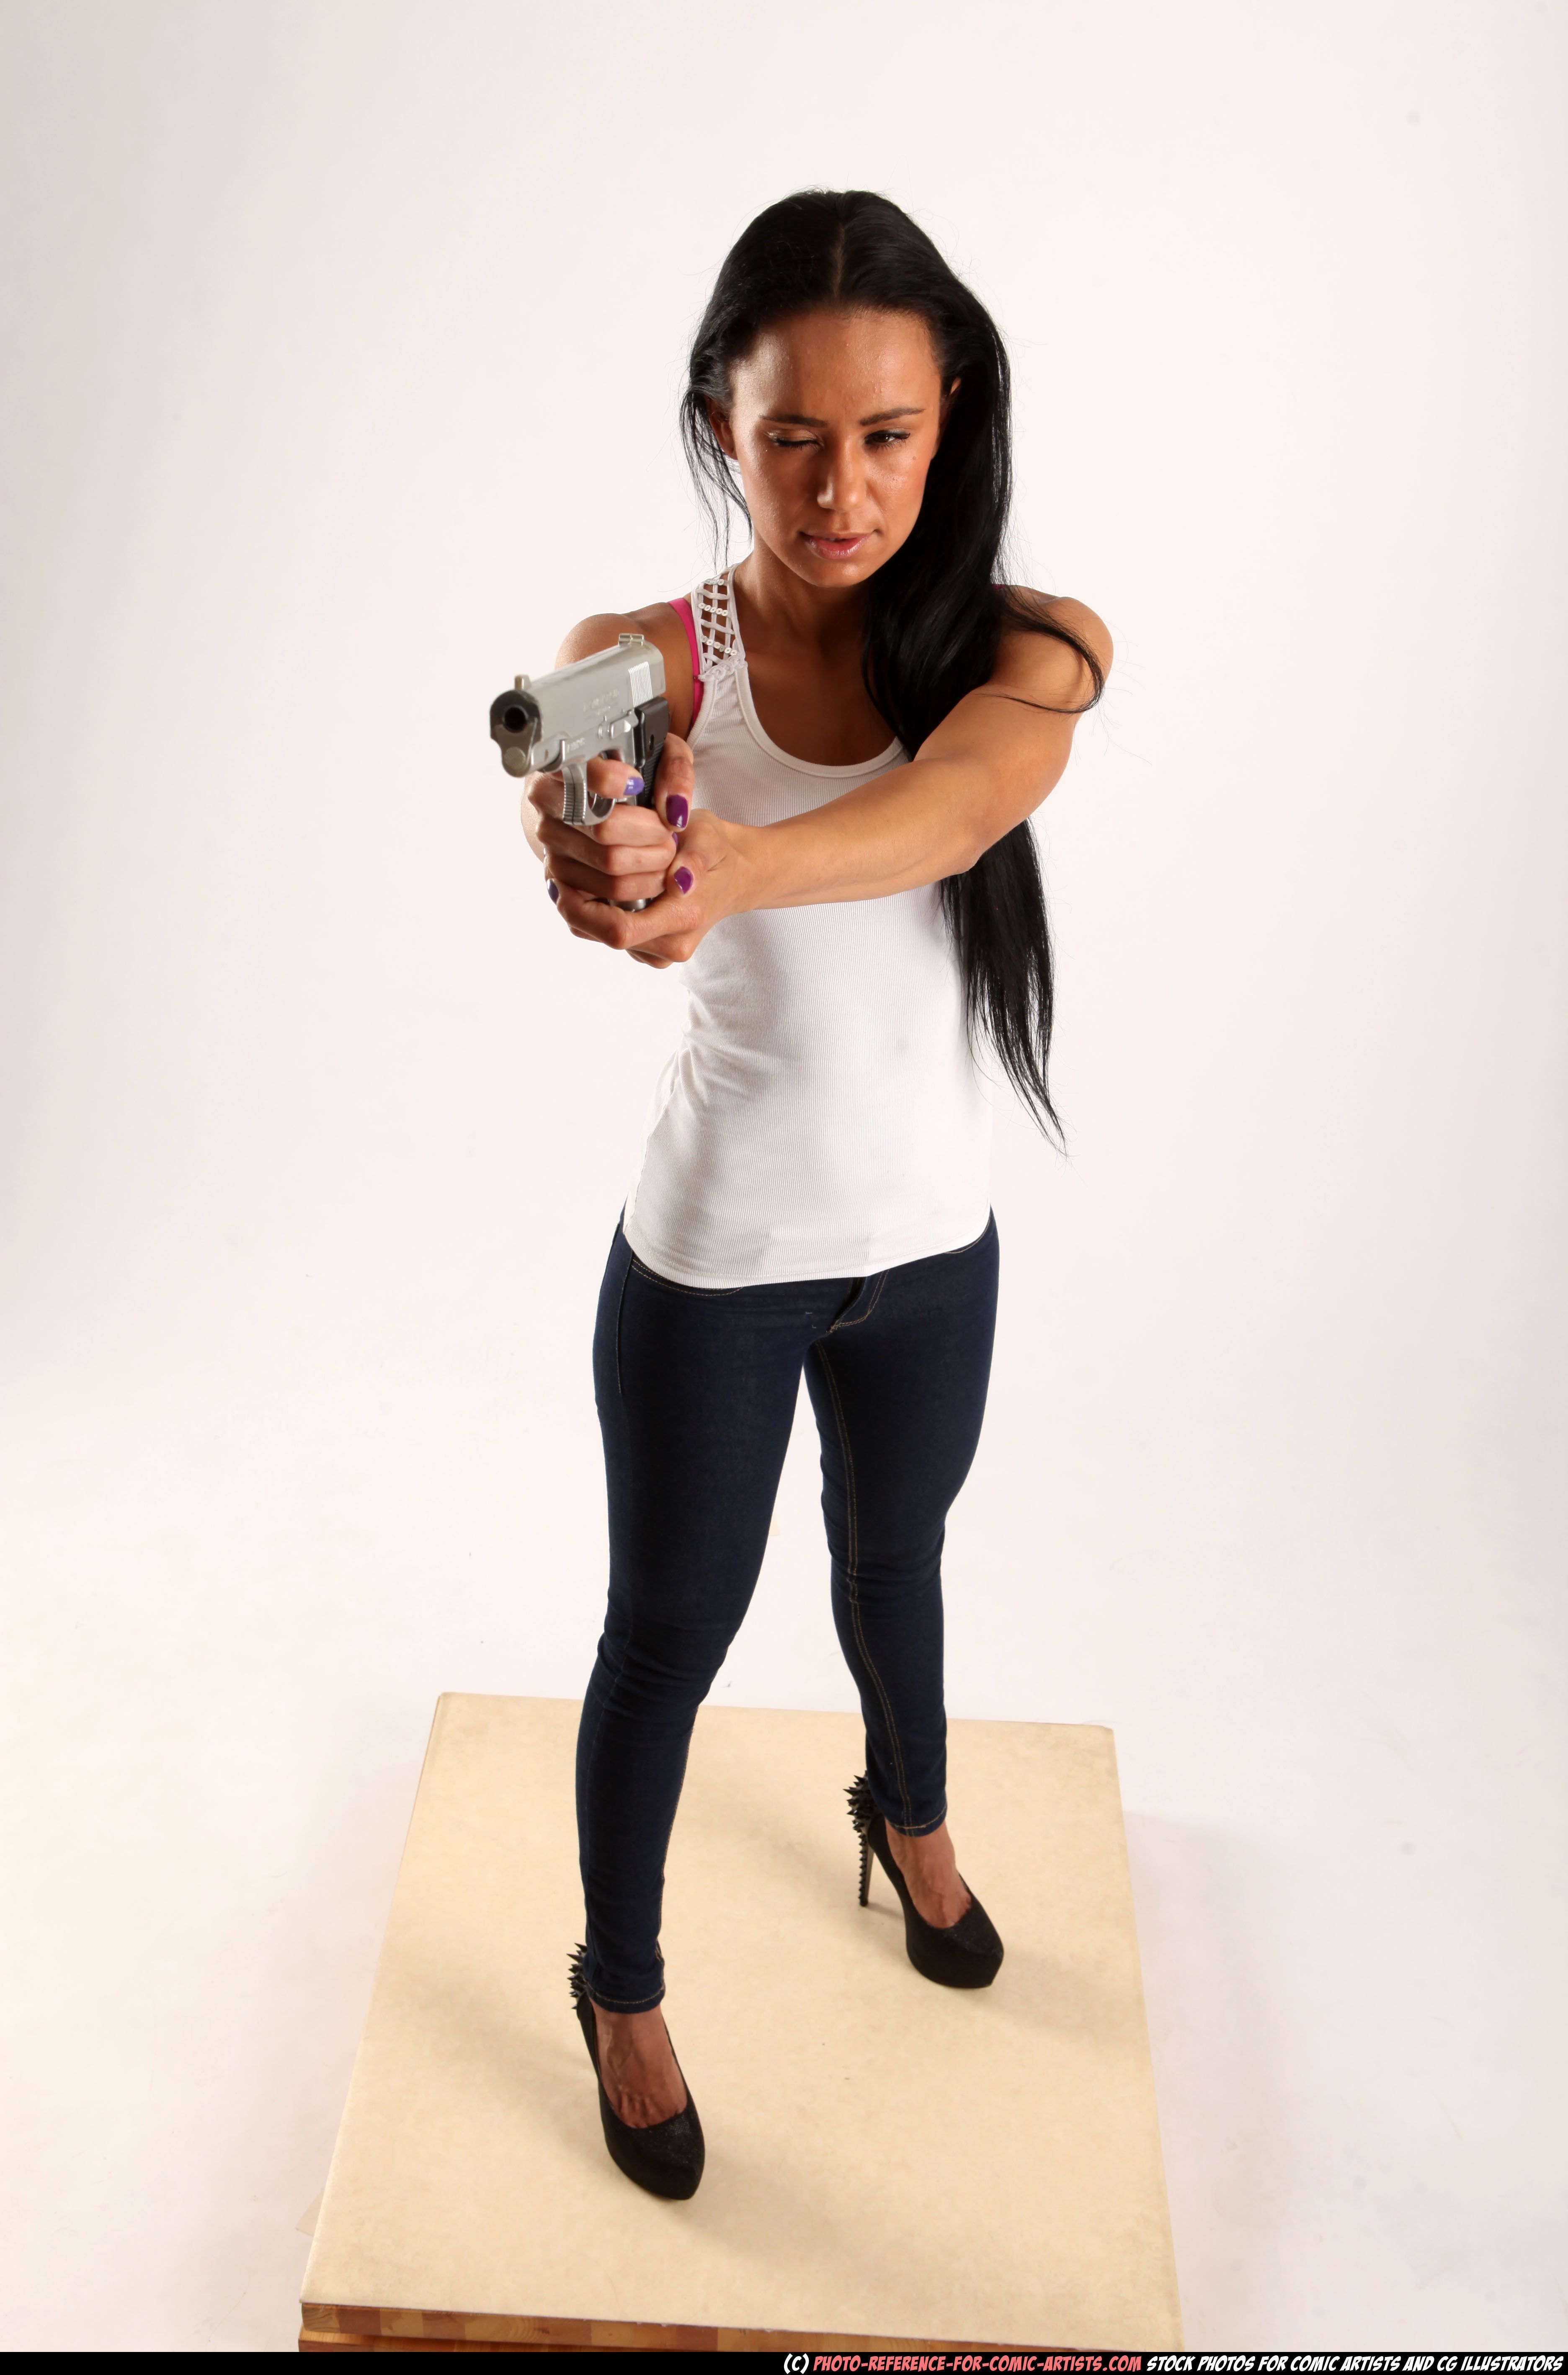 PHOTO OF WOMAN YOUNG ATHLETIC FIGHTING WITH GUN STANDING ...